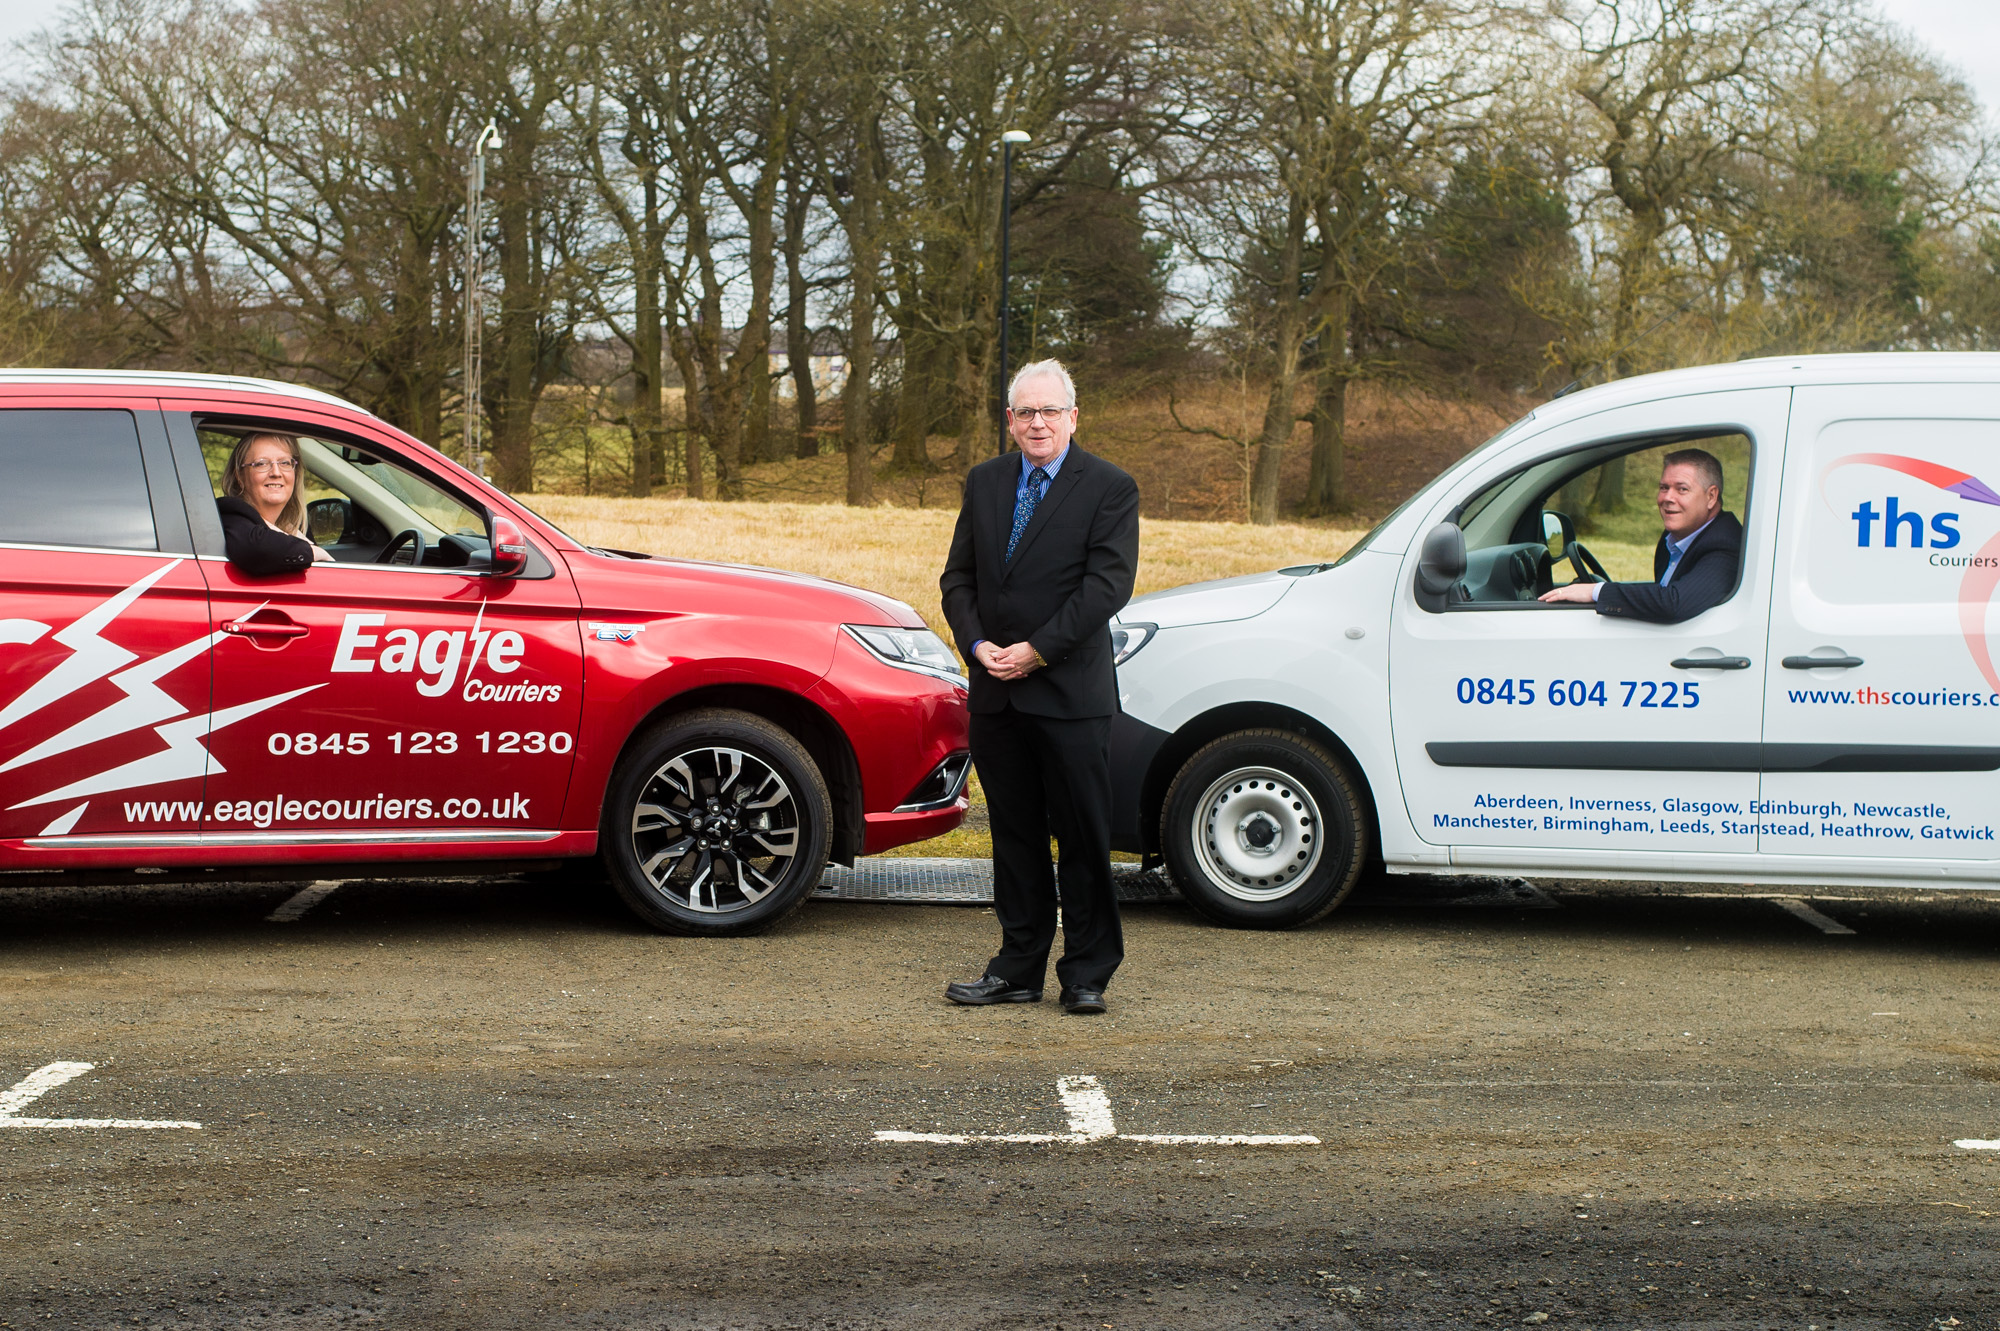 Eagle Couriers used PR photography from Holyrood PR